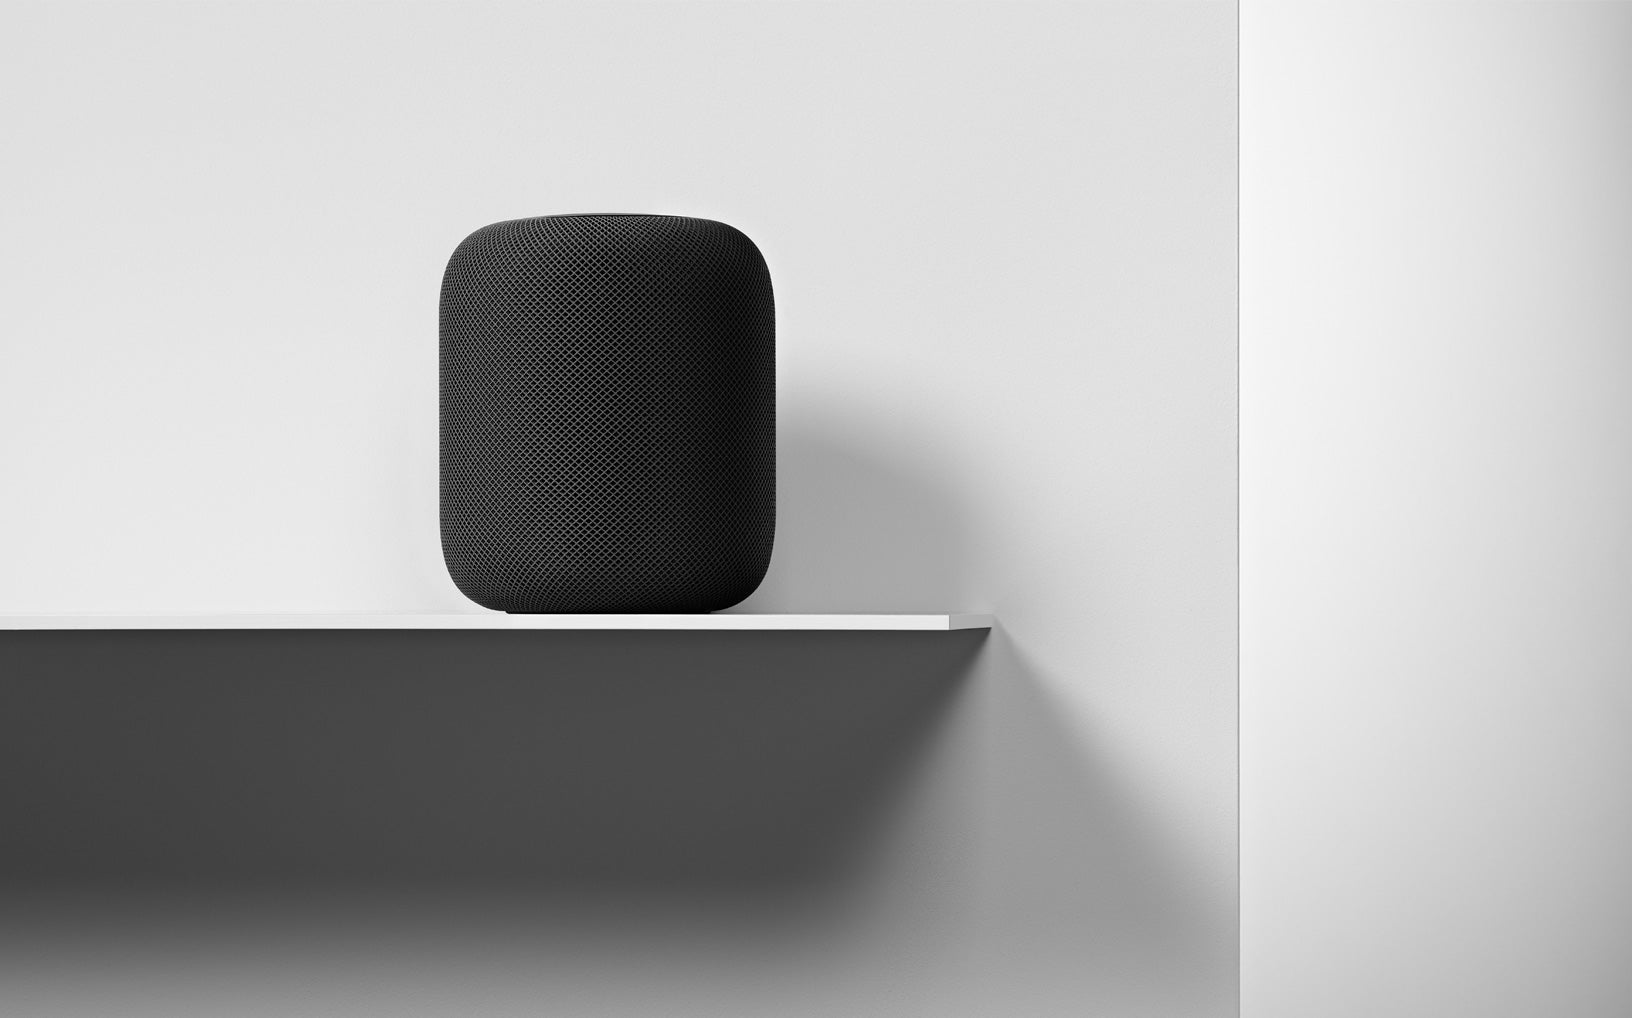 Apple HomePod: Australian Pricing, Specs And Availability